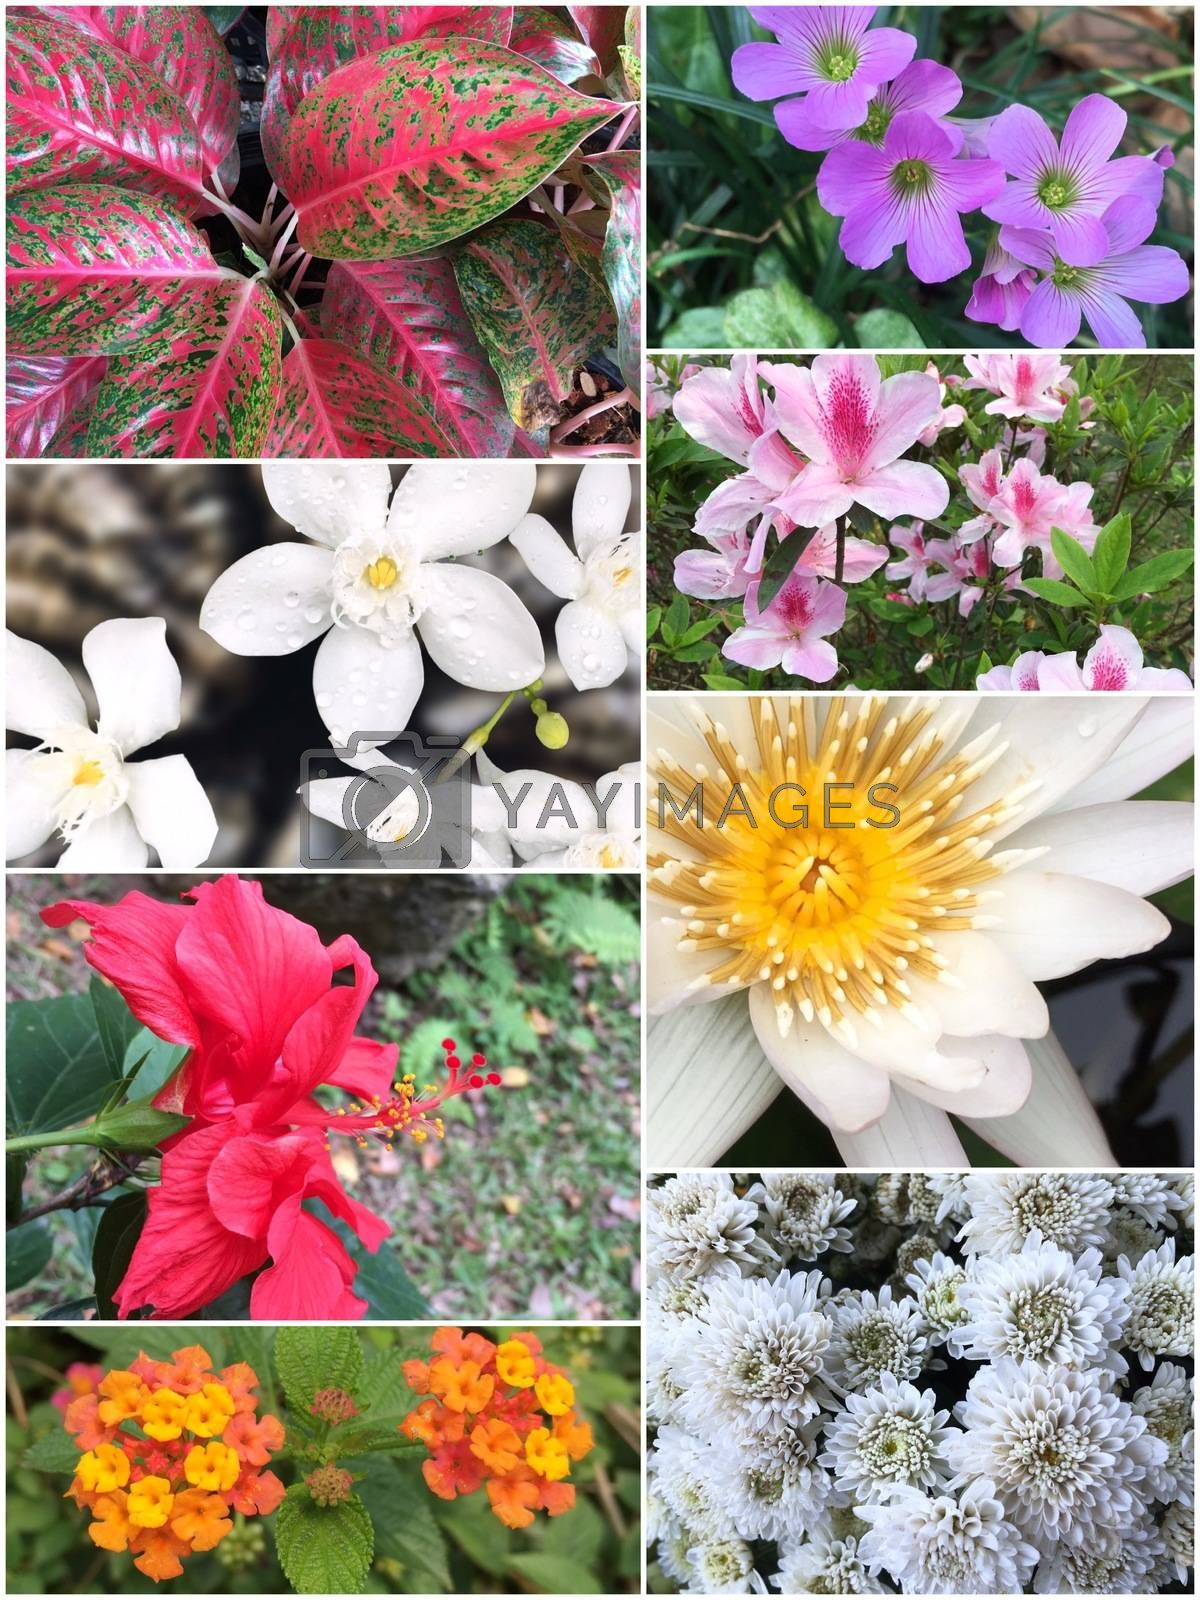 Collage of Beautiful variety of colorful flowers and plants as background